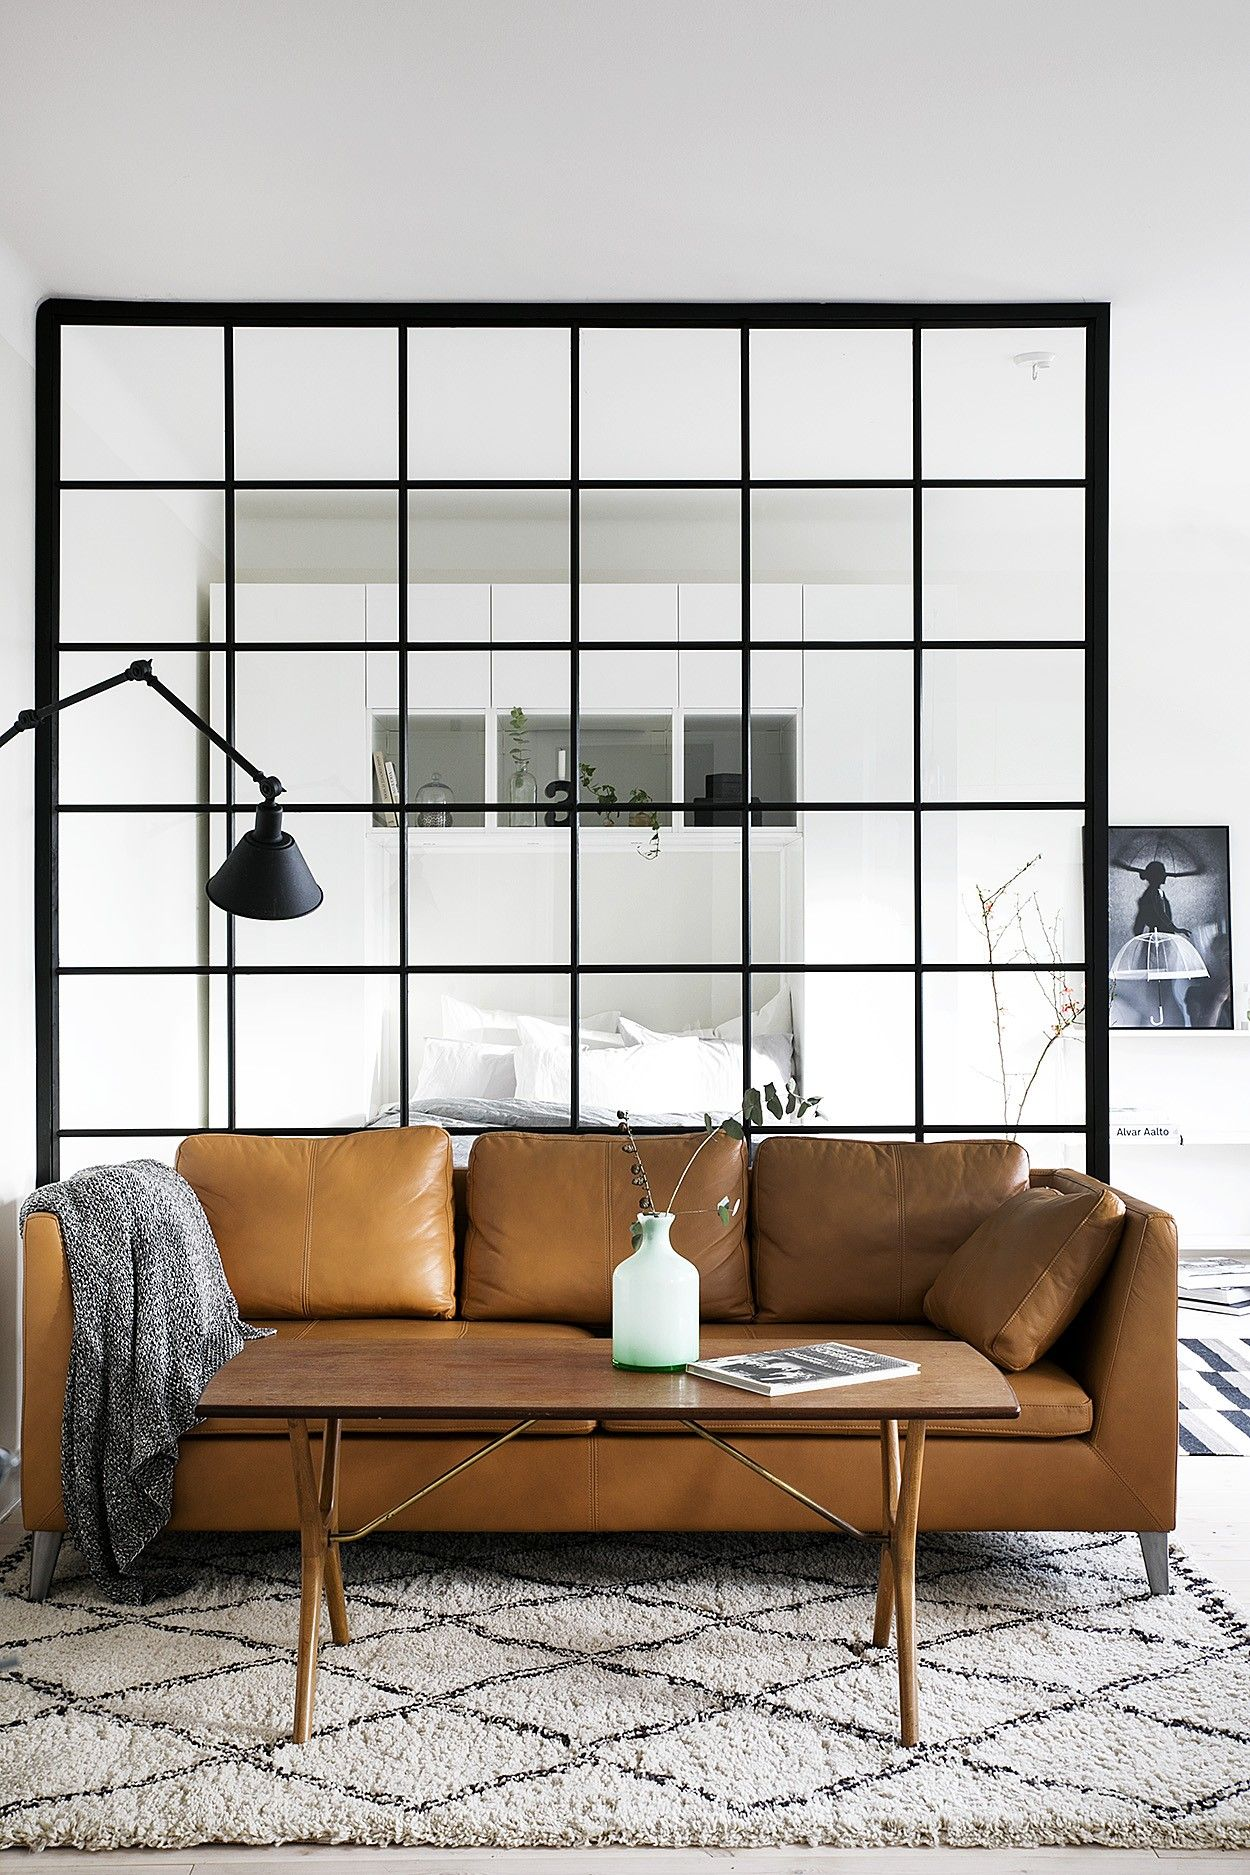 Home tour how to use a window wall as room divider u kreavilla